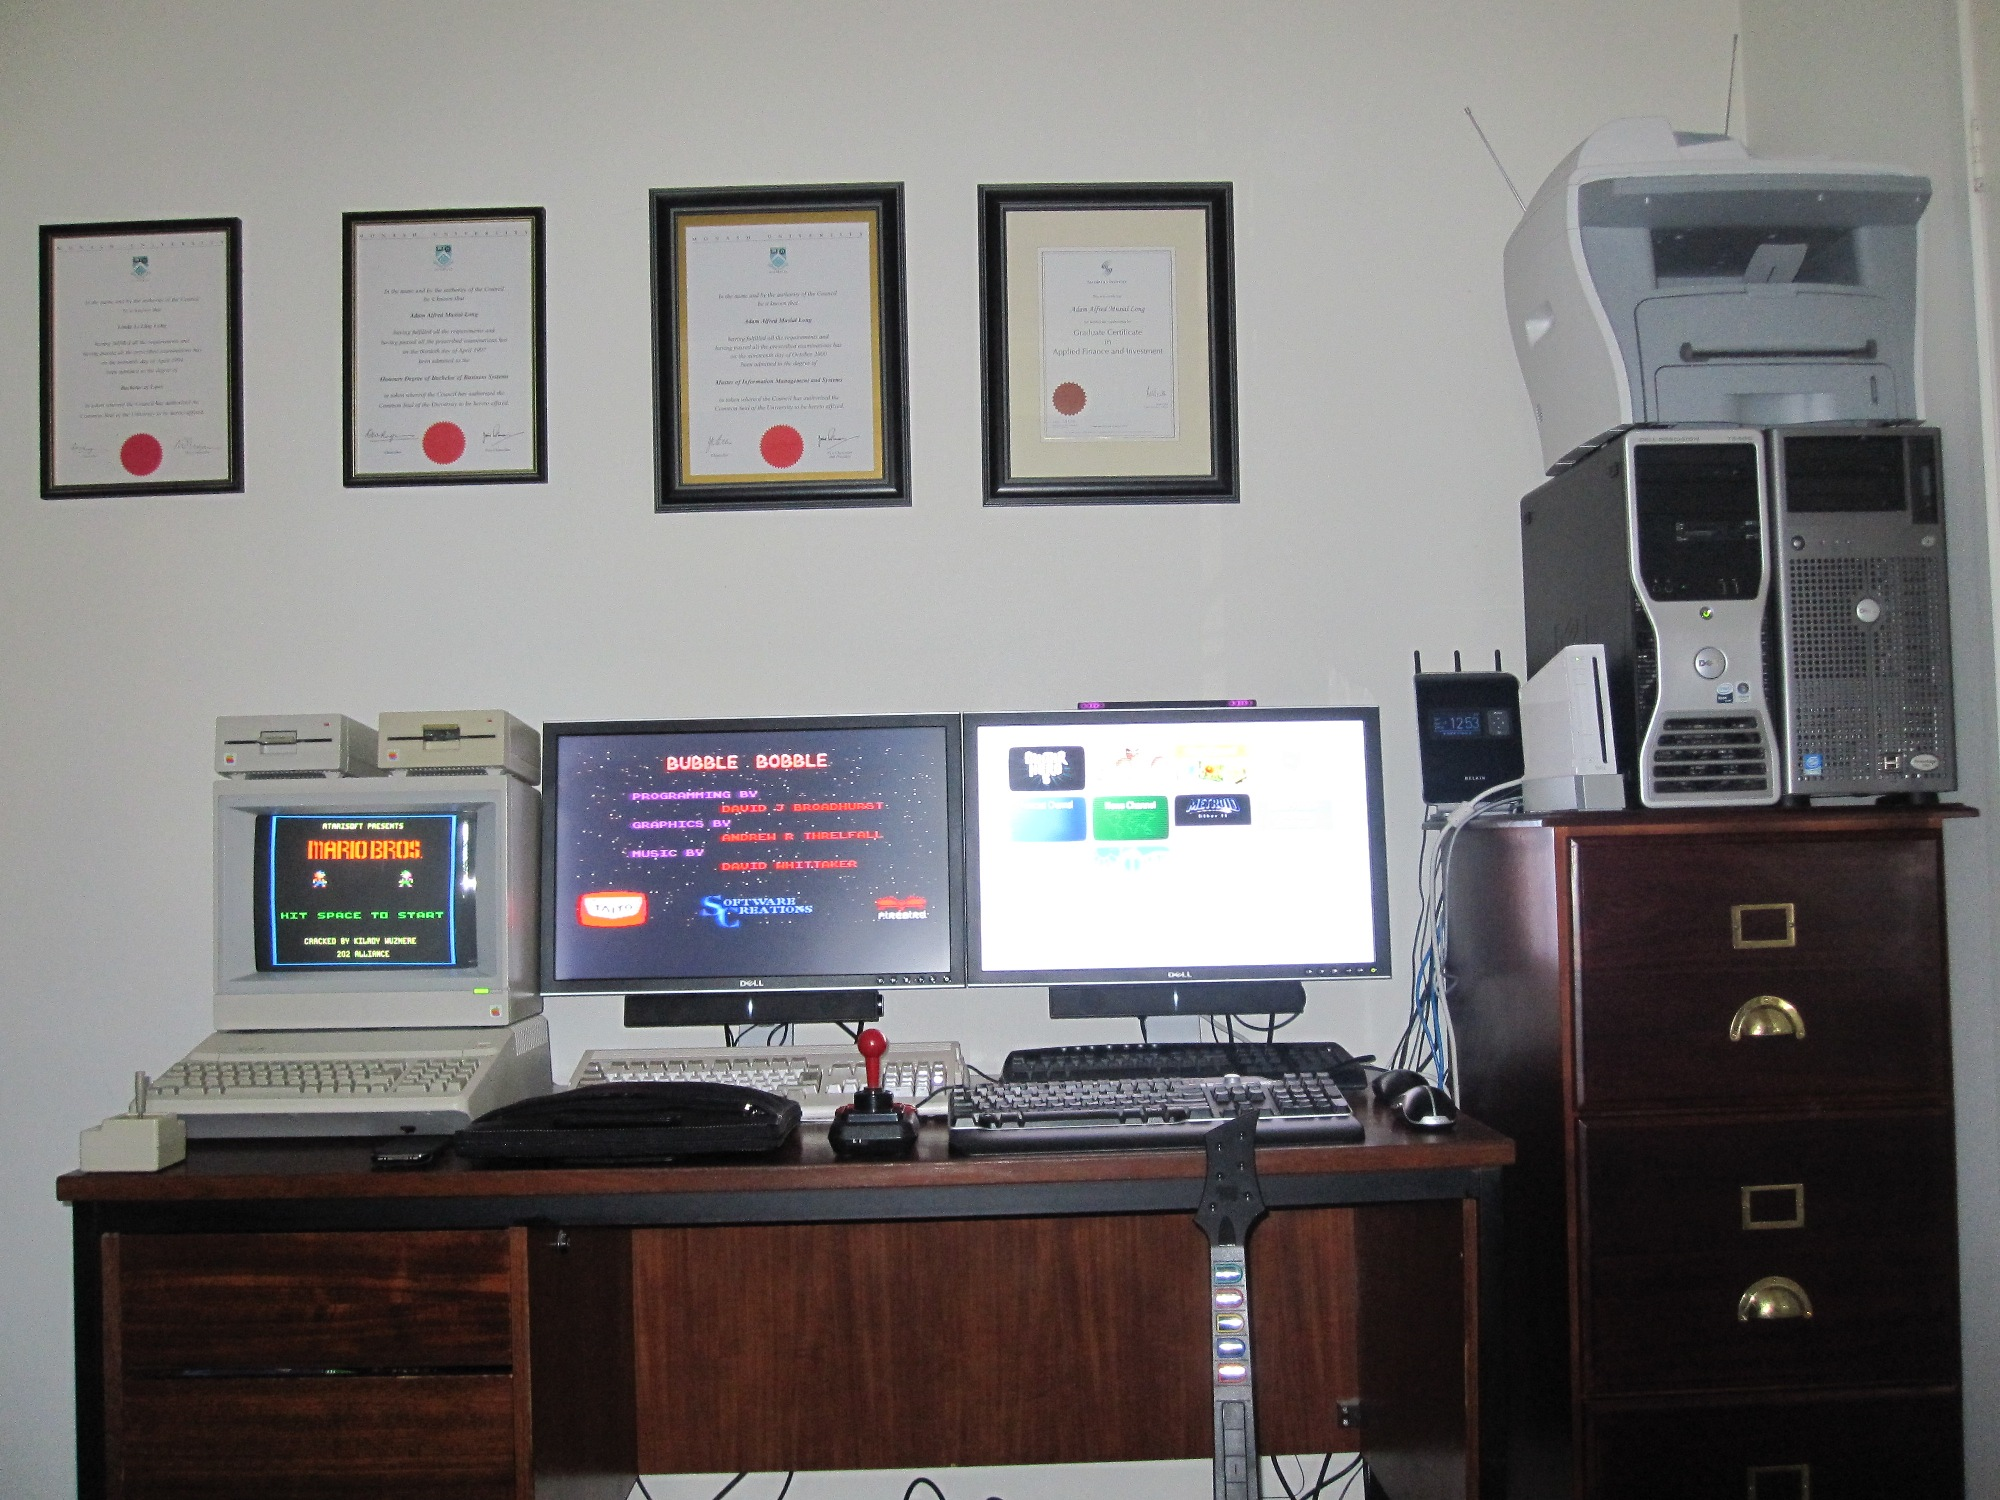 Home Office Desk Setup My Home Office Desk Setup Chief Technology Officer 39s Blog